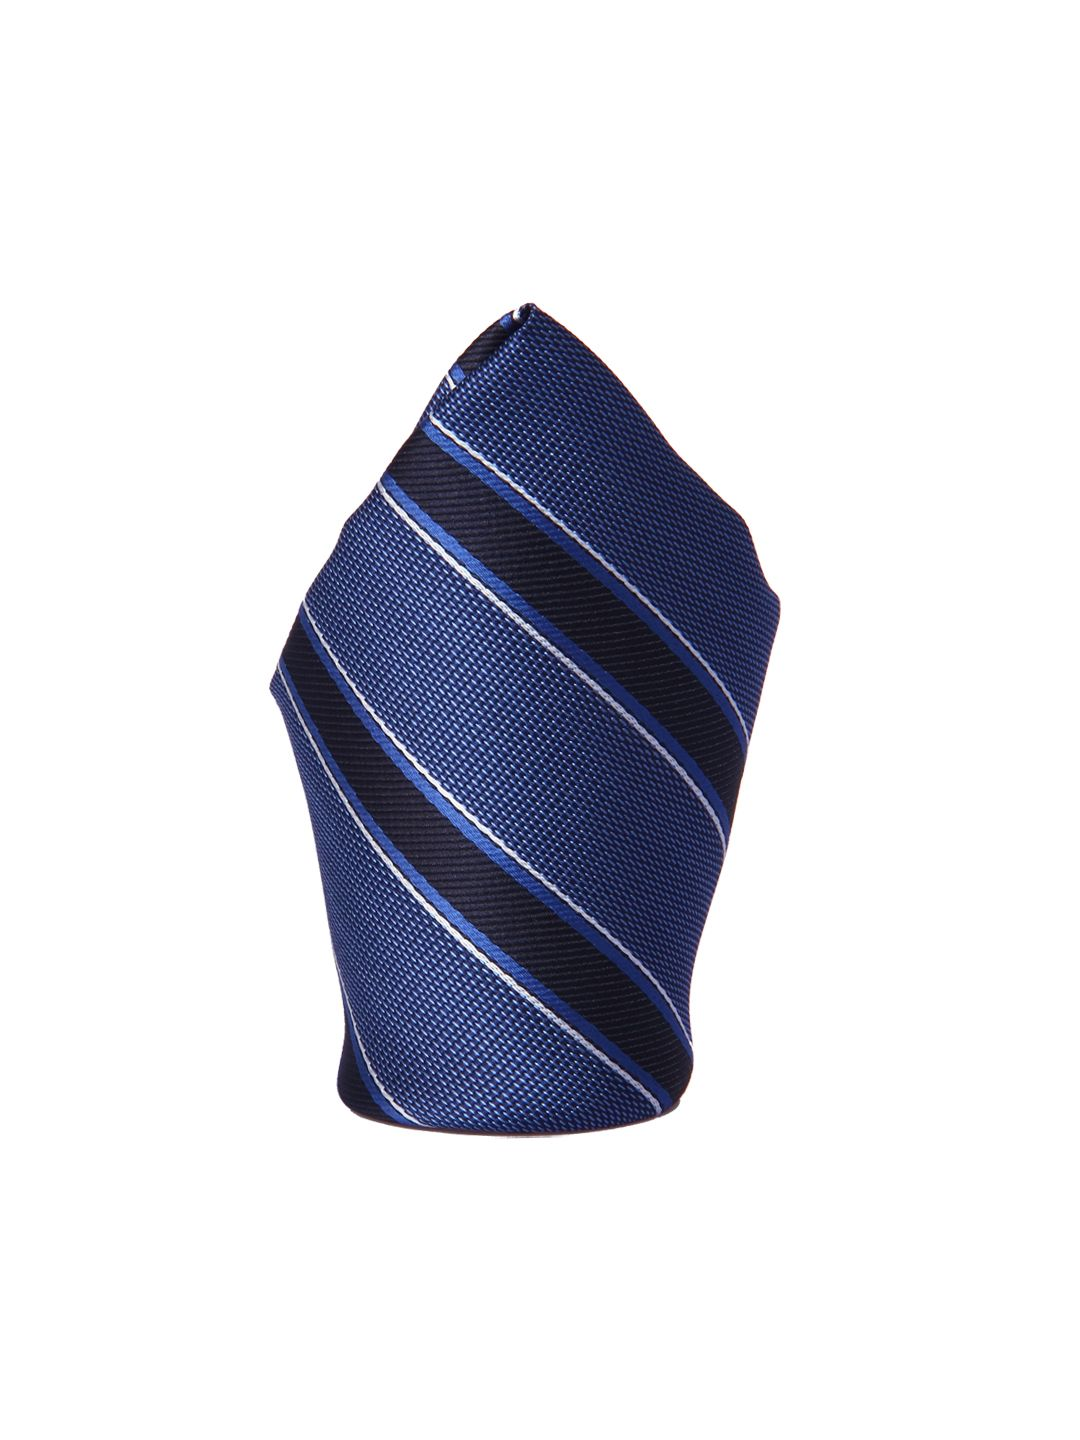 10fabec40bdd Pin by Tossido Men's Fashion Accessories on Woven Pocket Square | Pinterest  | Pocket Square, Pocket and Blue